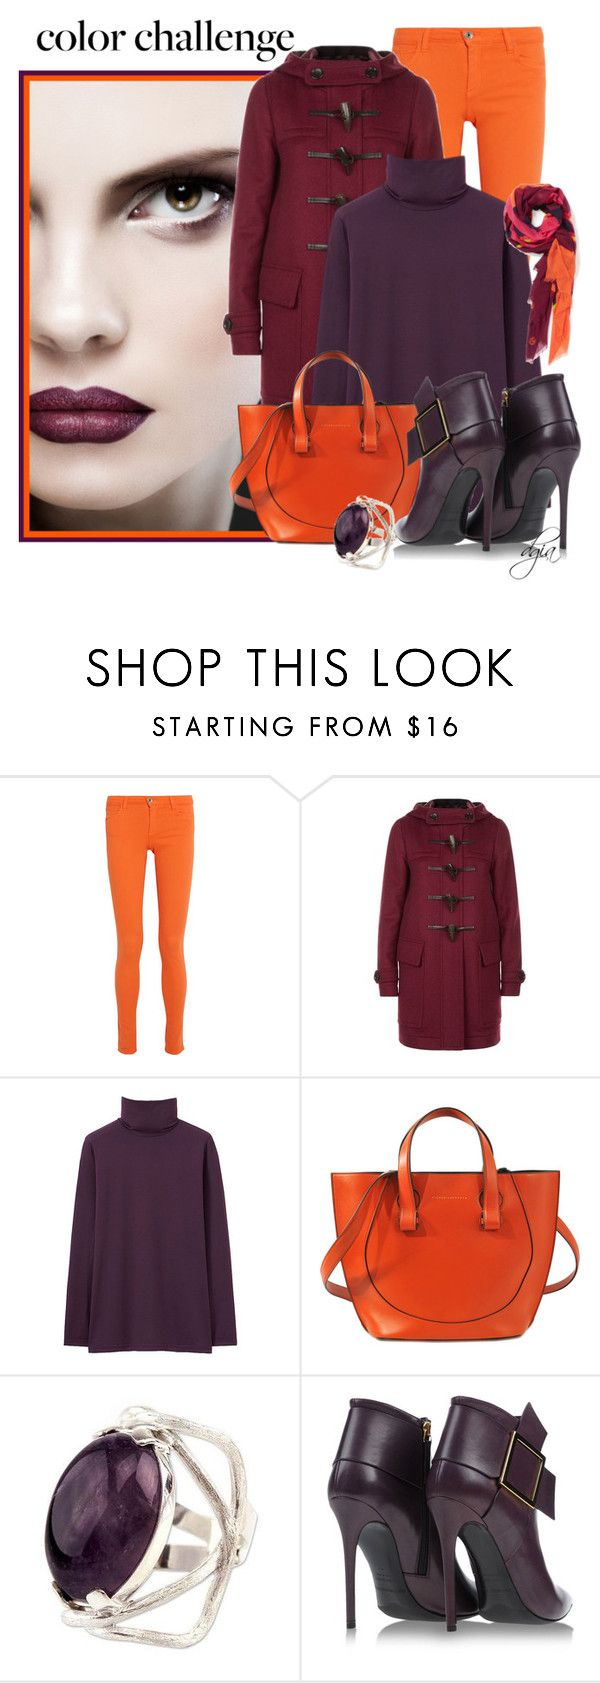 """""""Victoria Beckham Small Tulip tote"""" by dgia ❤ liked on Polyvore featuring Alice + Olivia, Burberry, Uniqlo, Victoria Beckham, NOVICA, Gianmarco Lorenzi and Jonathan Adler"""